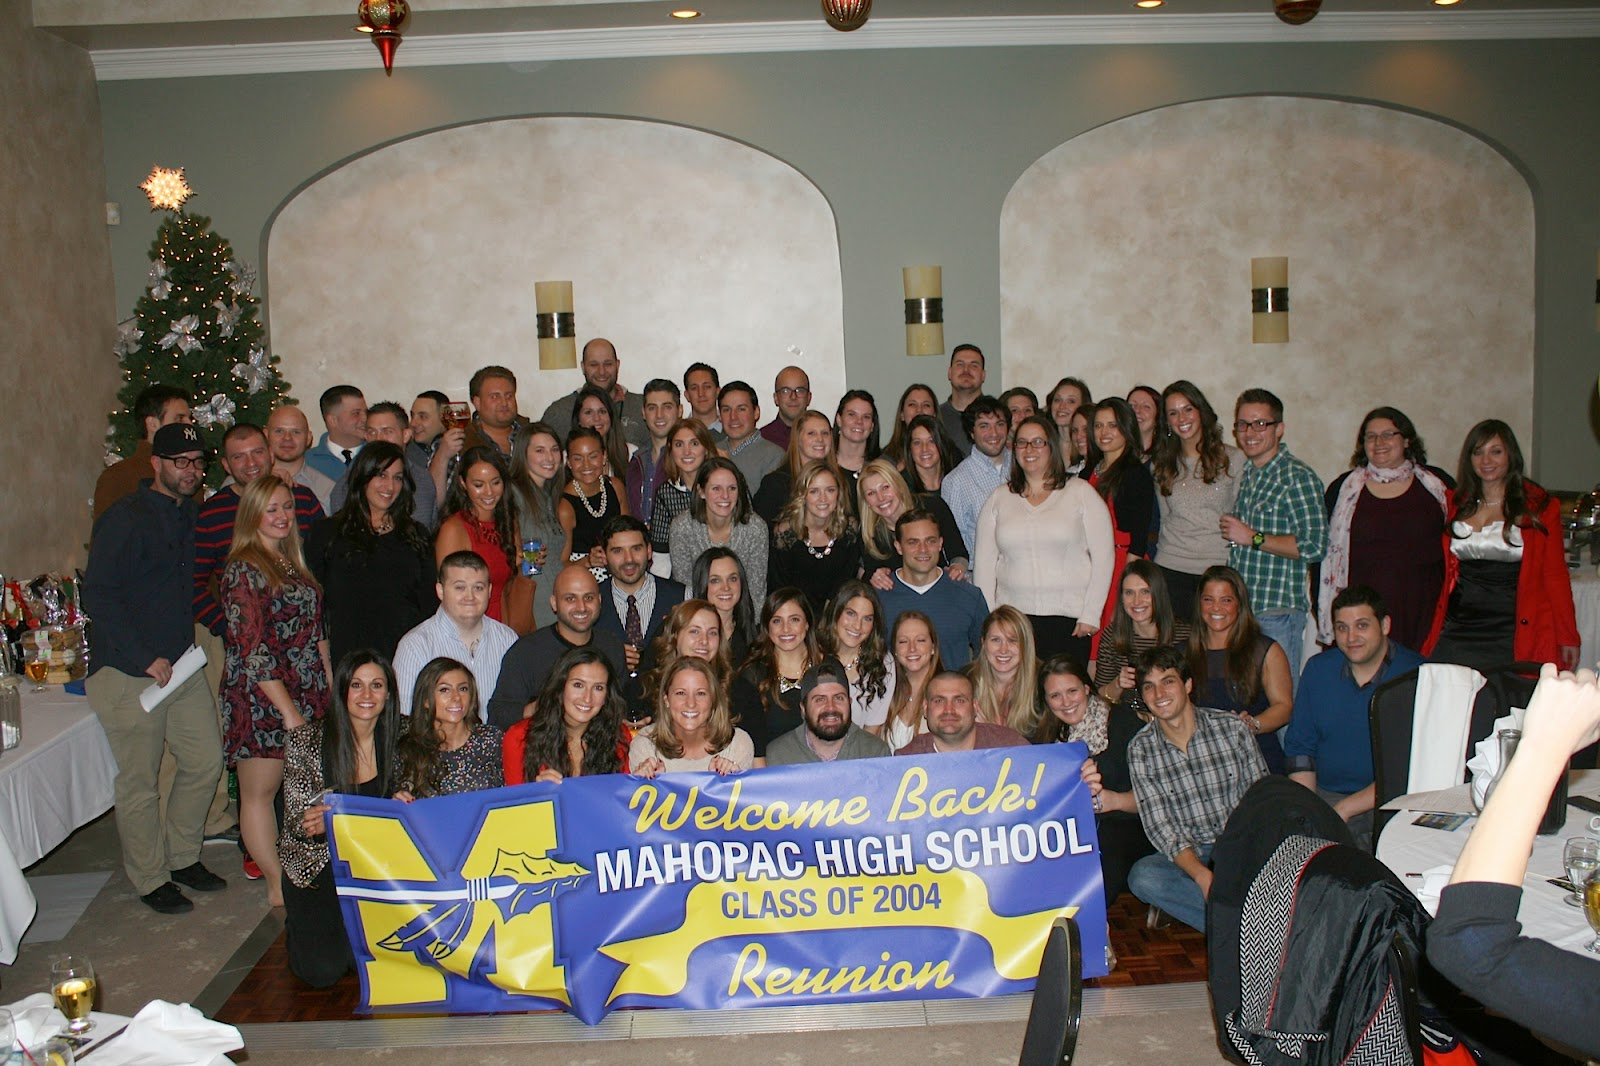 Mahopac High School Class of 2004 - Ten Year Reunion